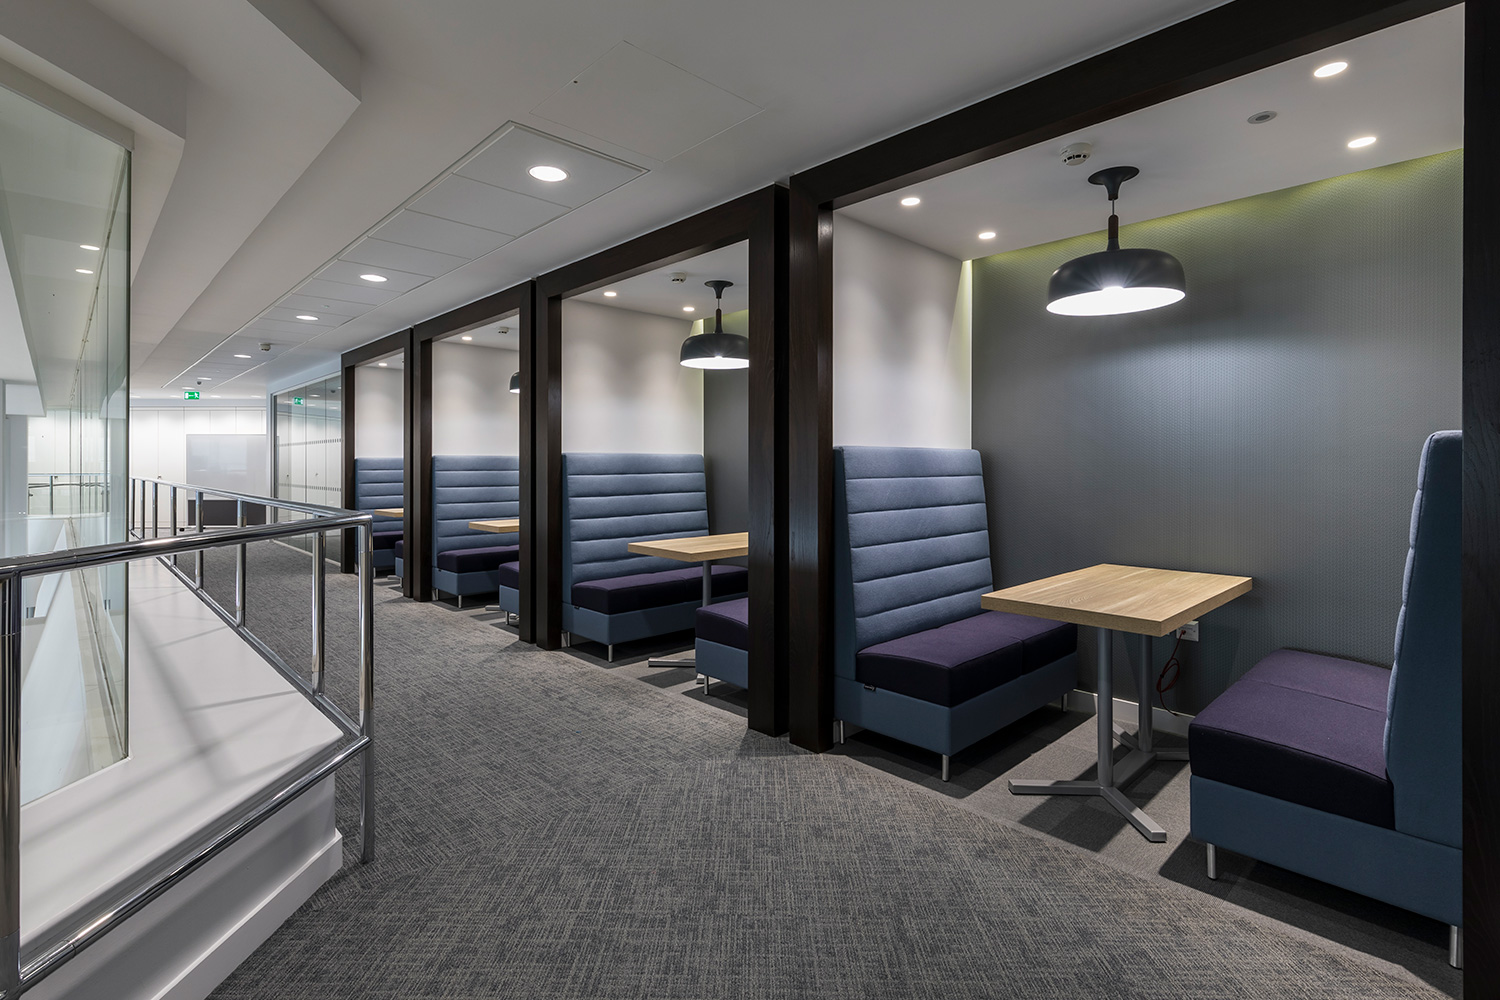 Private Breakout booths with blue and purple seating